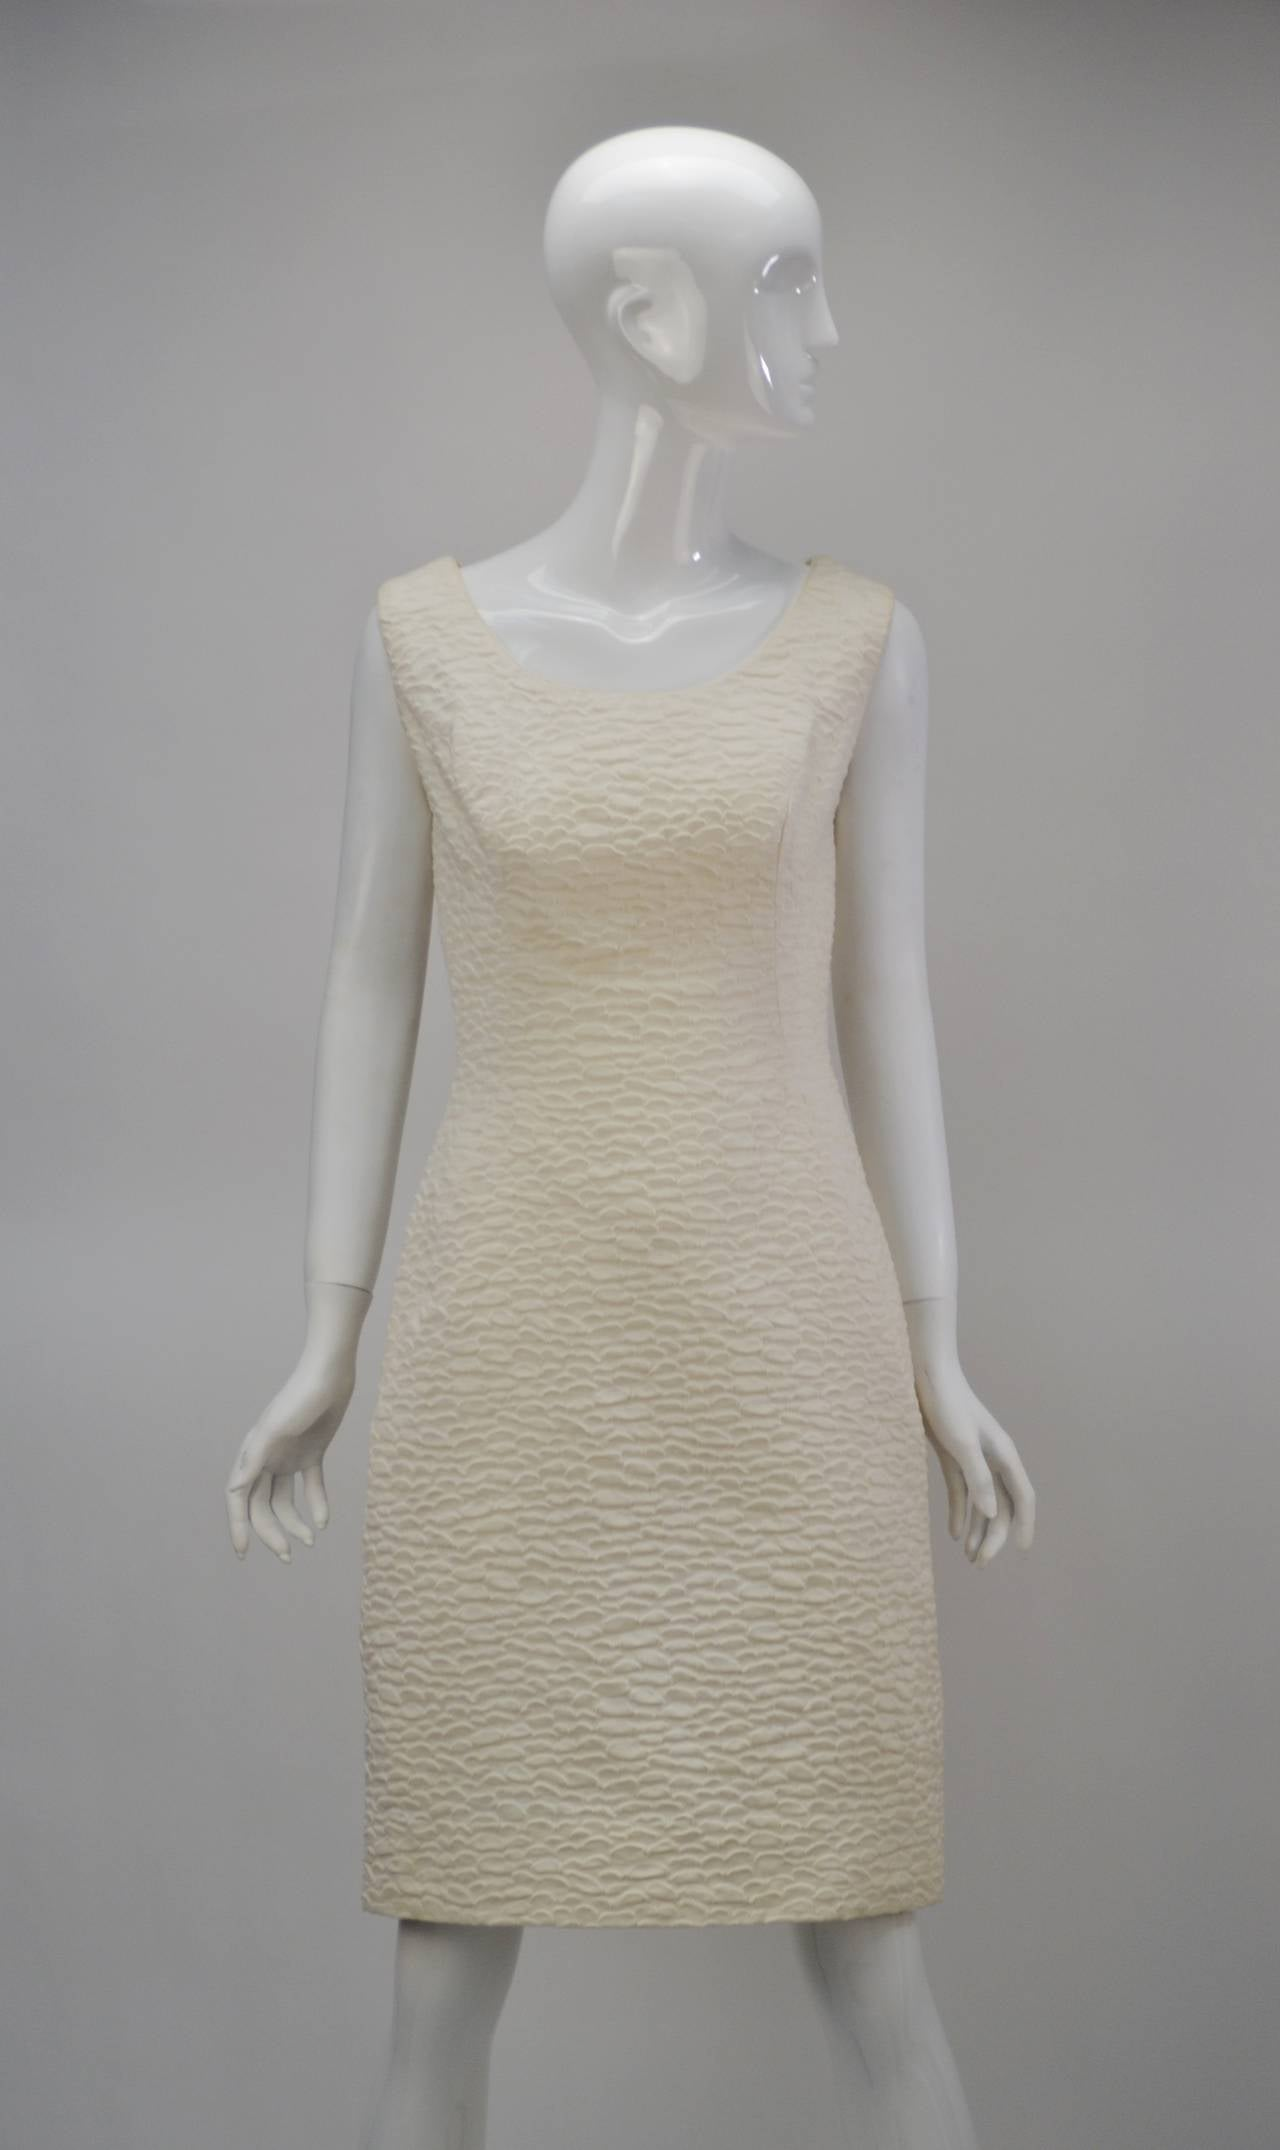 Stunning Mr. Blackwell ivory cocktail dress and cape. Both garments are lined in silk, with a wavy, textured fabric as the focus. The sleeveless dress features a dainty scoop neck and a zippered back closure. It has princess seaming in the front and